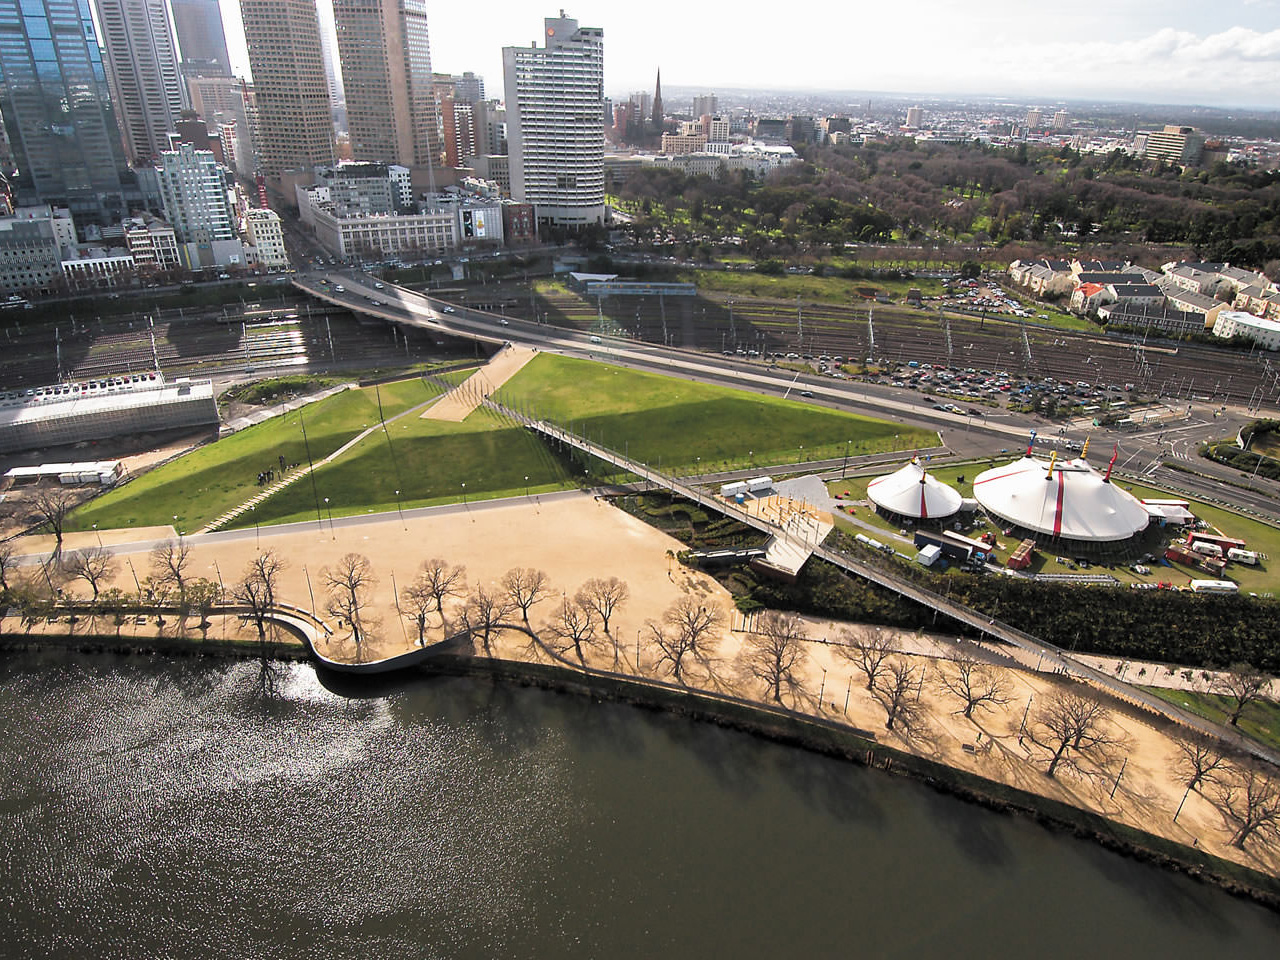 Birrarung Marr in Victoria, by TCL and Ecodynamics. Image: TCL